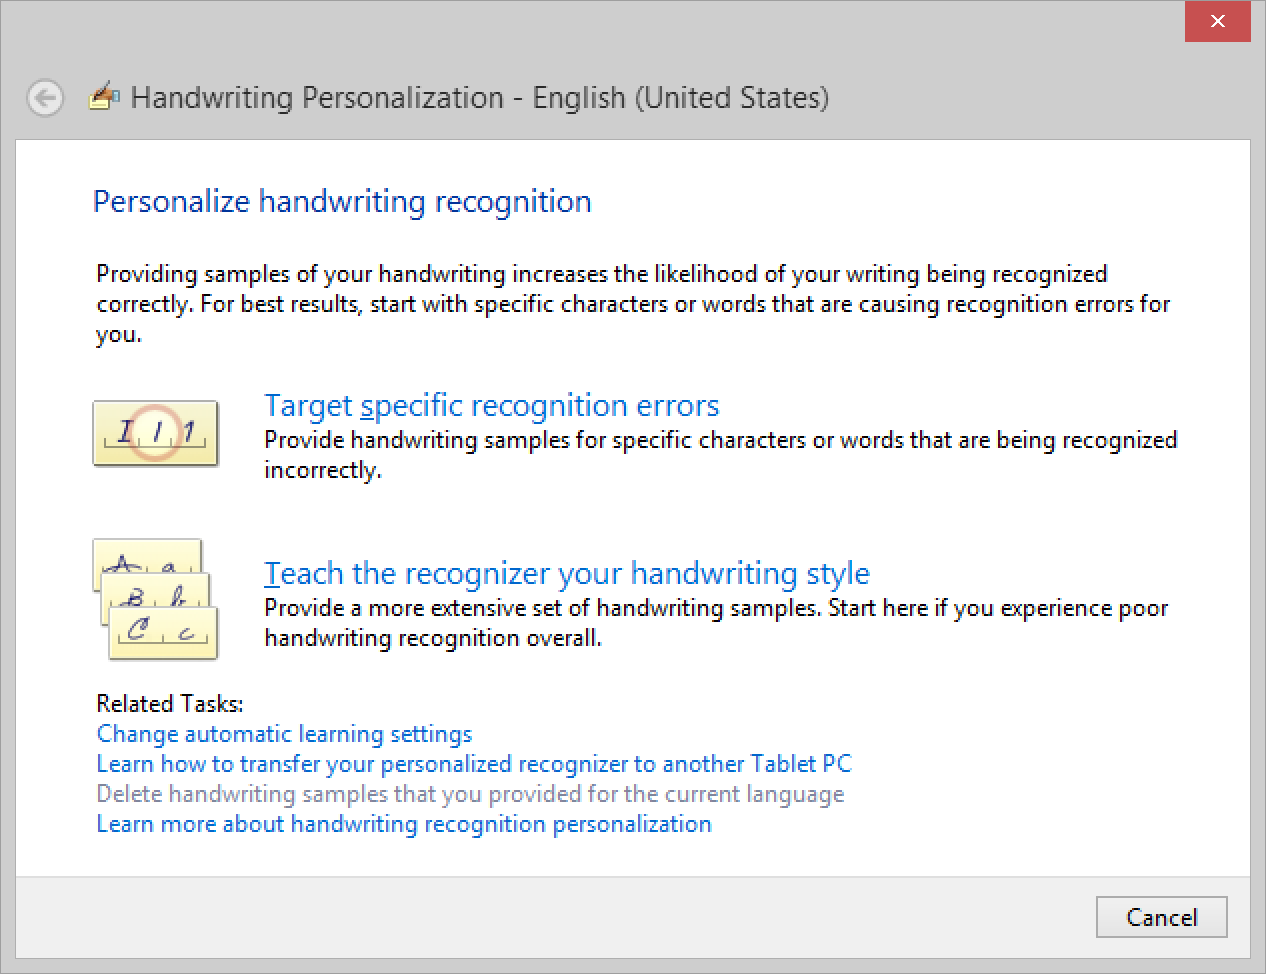 004-Customizing-Handwriting-Recognition-in-Windows-8-8-1